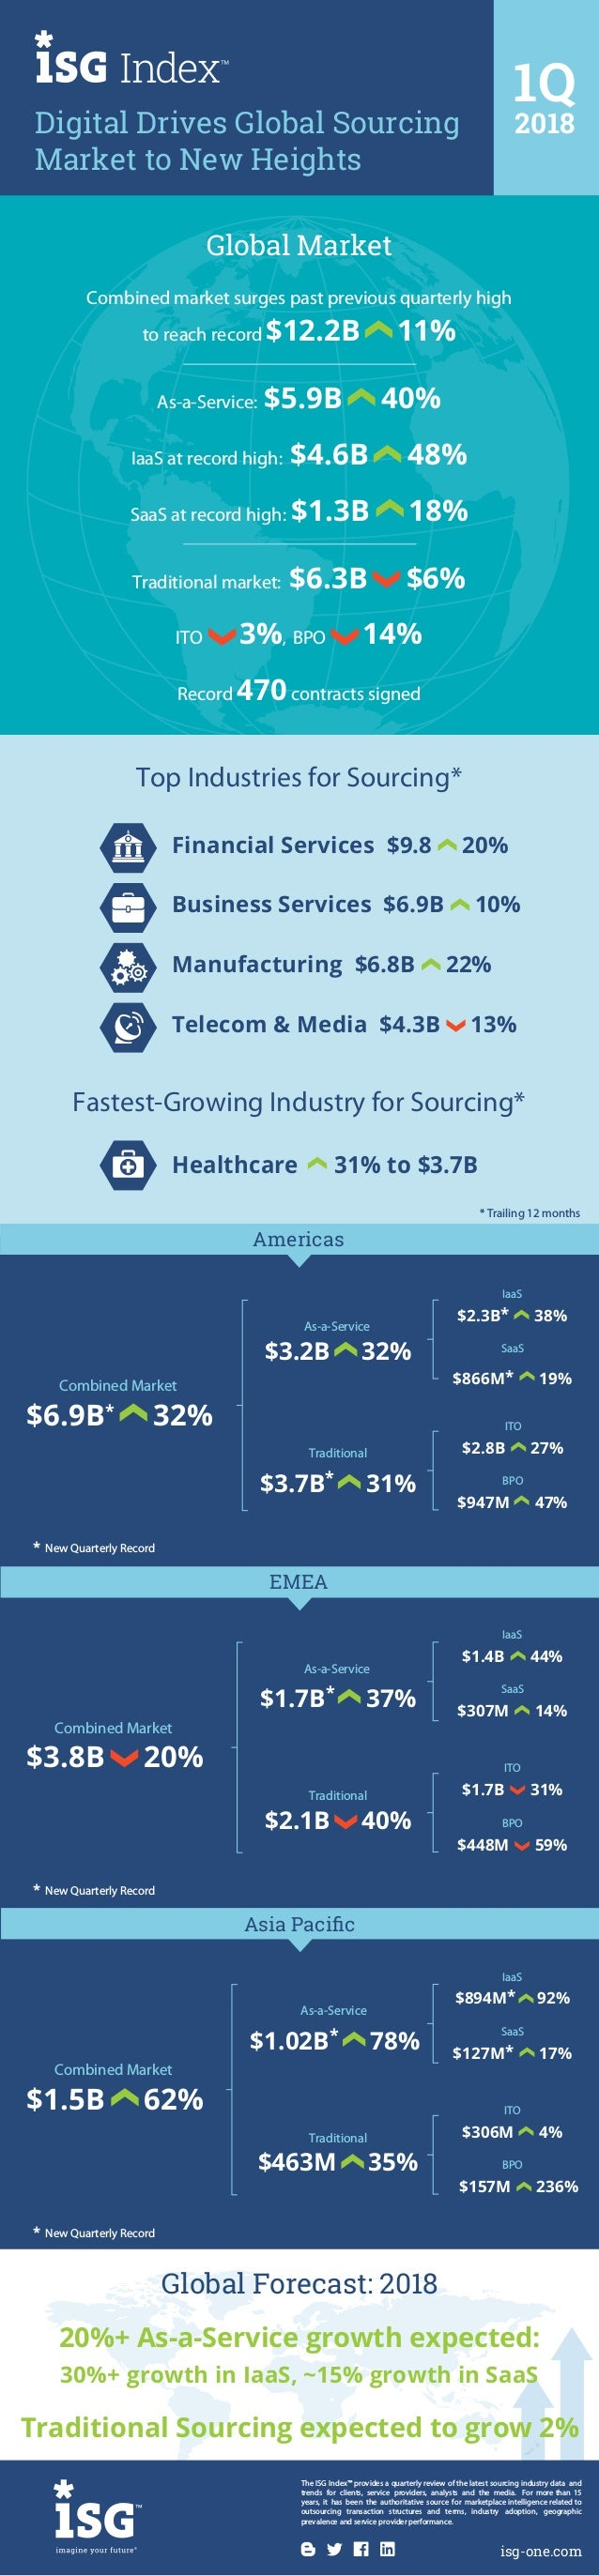 Digital Drives Global Sourcing Market to New Heights 1Q 2018 The ISG Index™ provides a quarterly review of the latest sour...